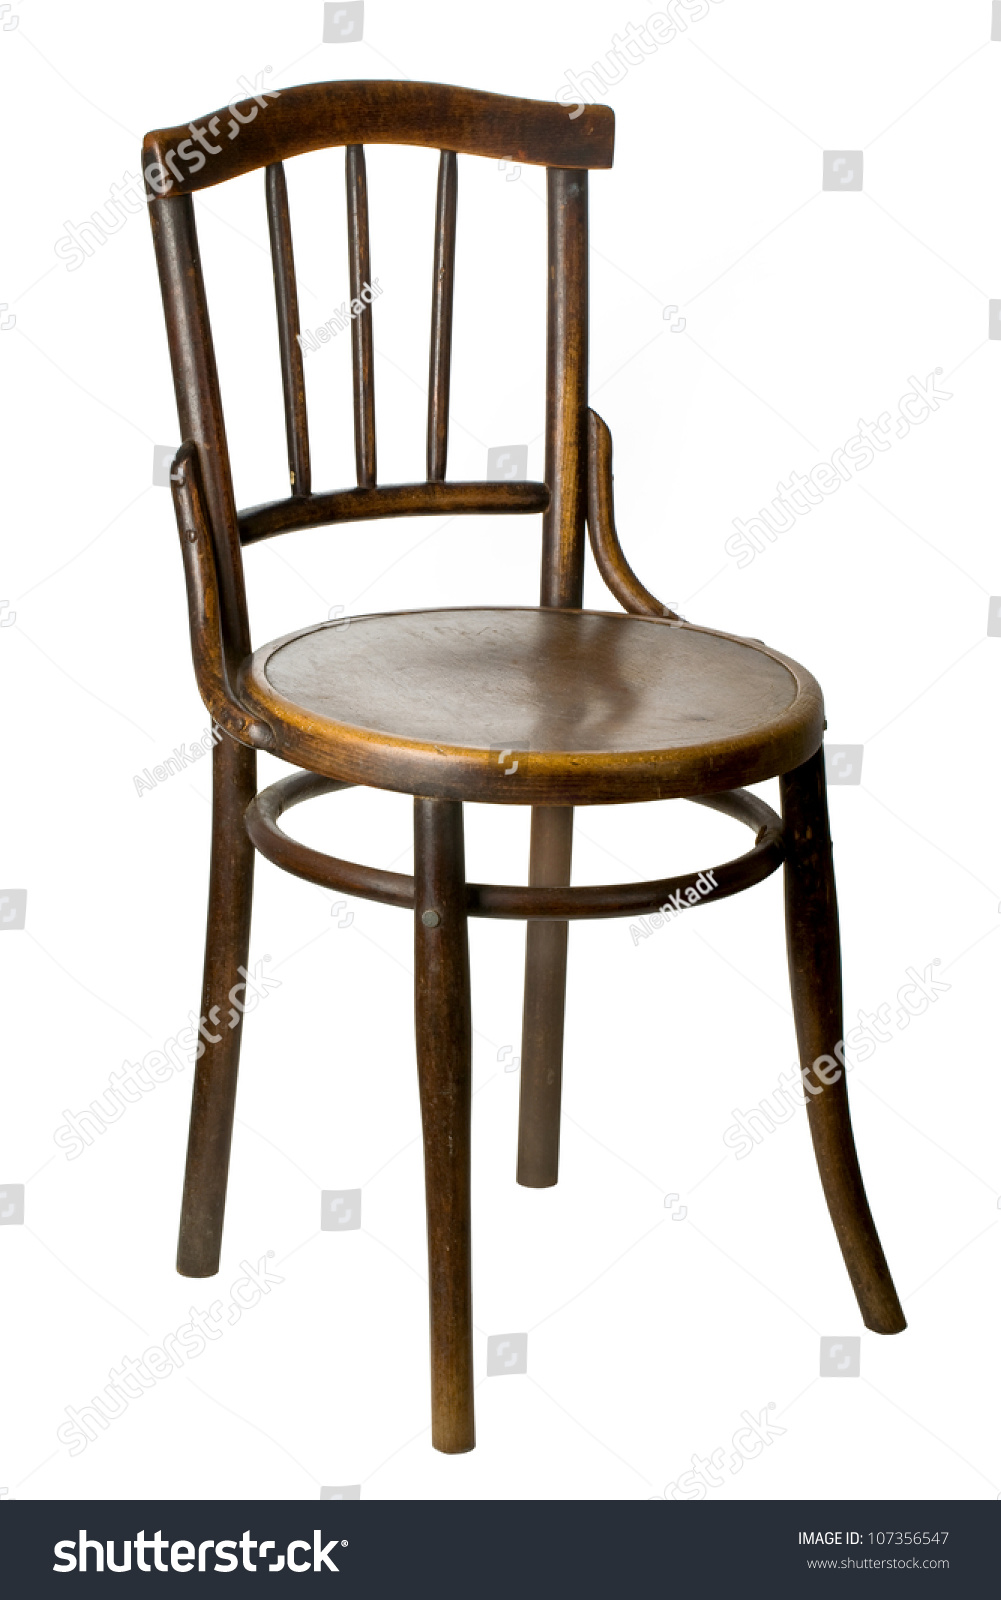 Old wooden chairs - Old Wooden Chair On White Background